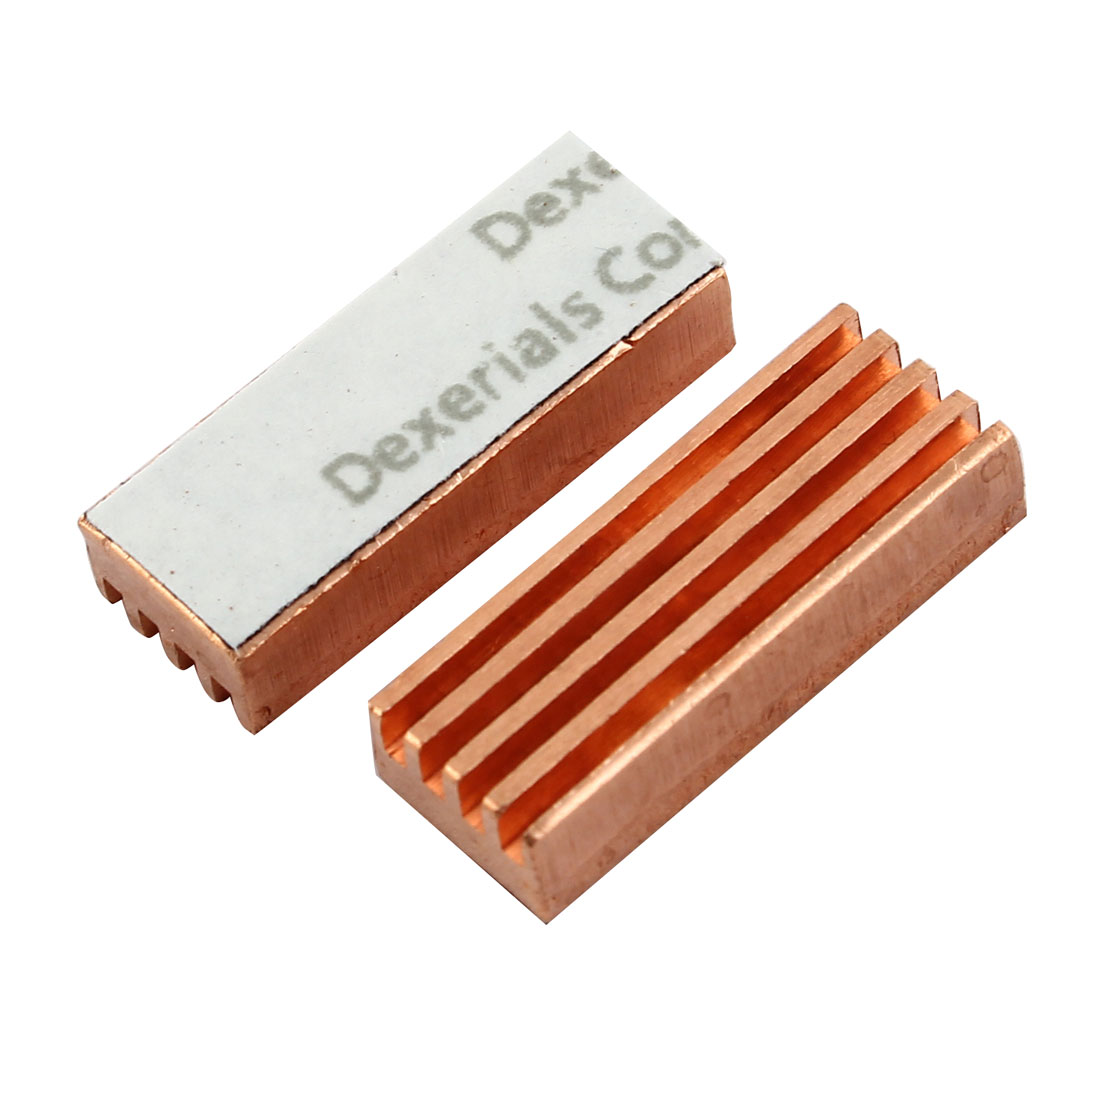 2 Pcs PC Computer Memory MC-200 Copper Heat Sink for DDR DDR2 DDR3 RAM